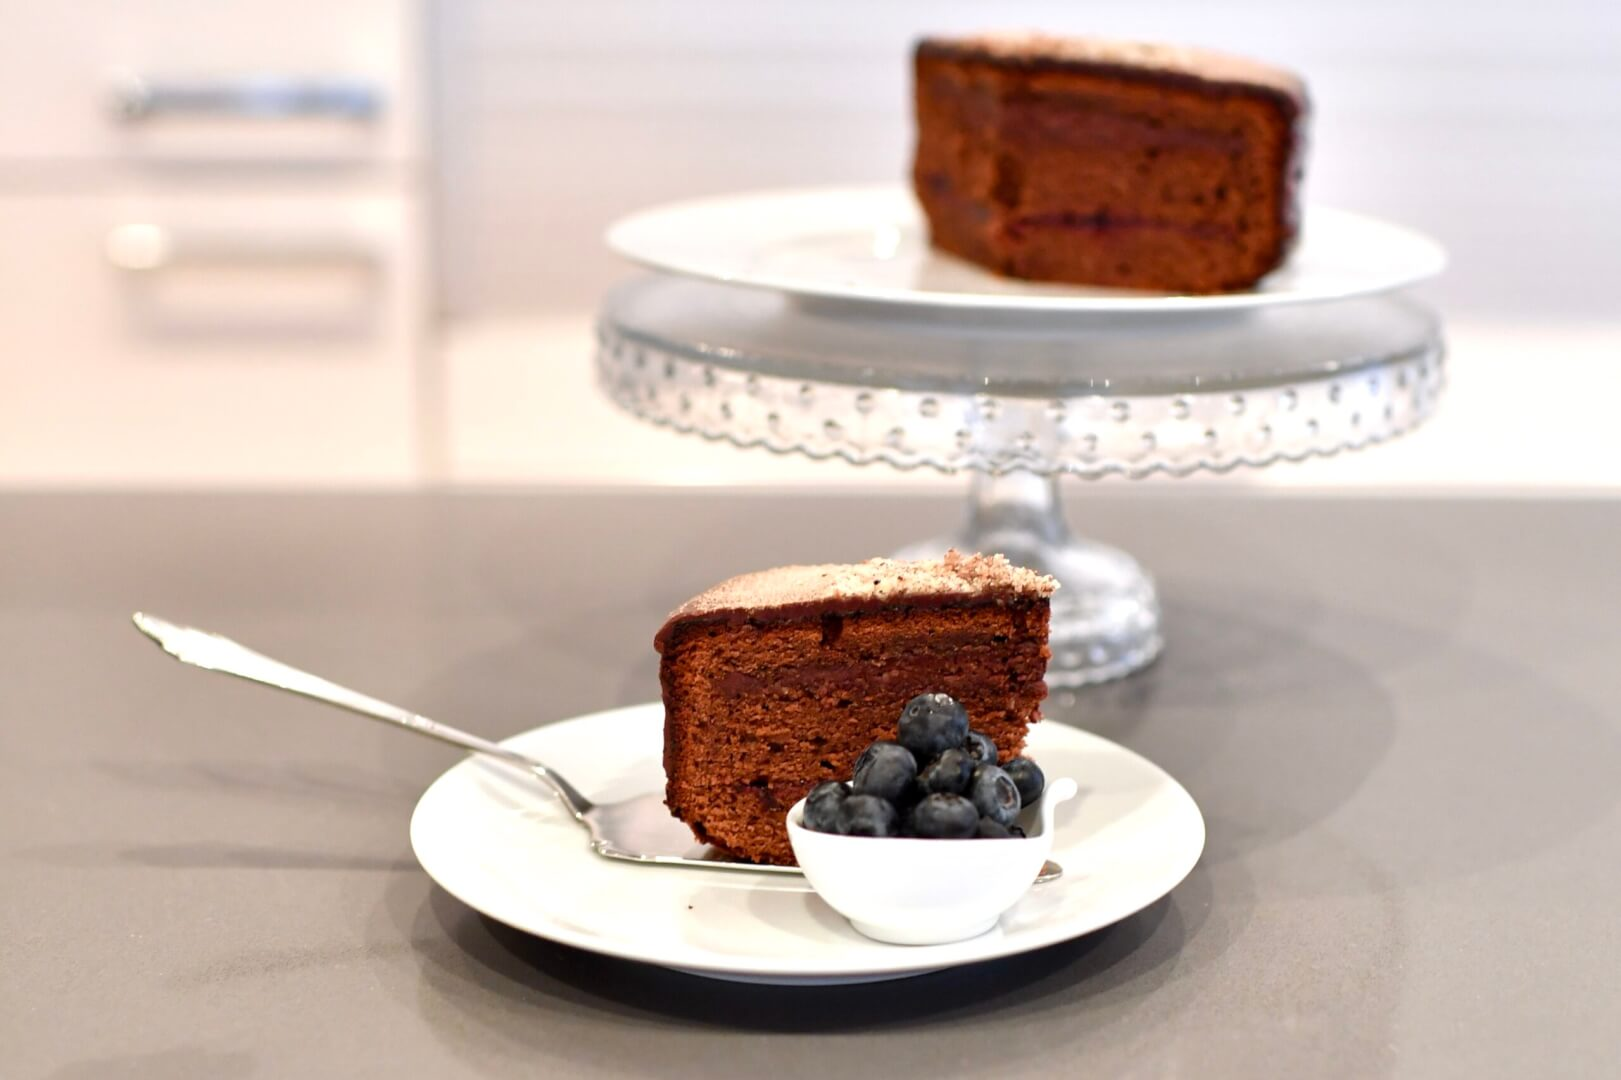 Dreamy Chocolate Cake with Cinnamon and Hazelnuts